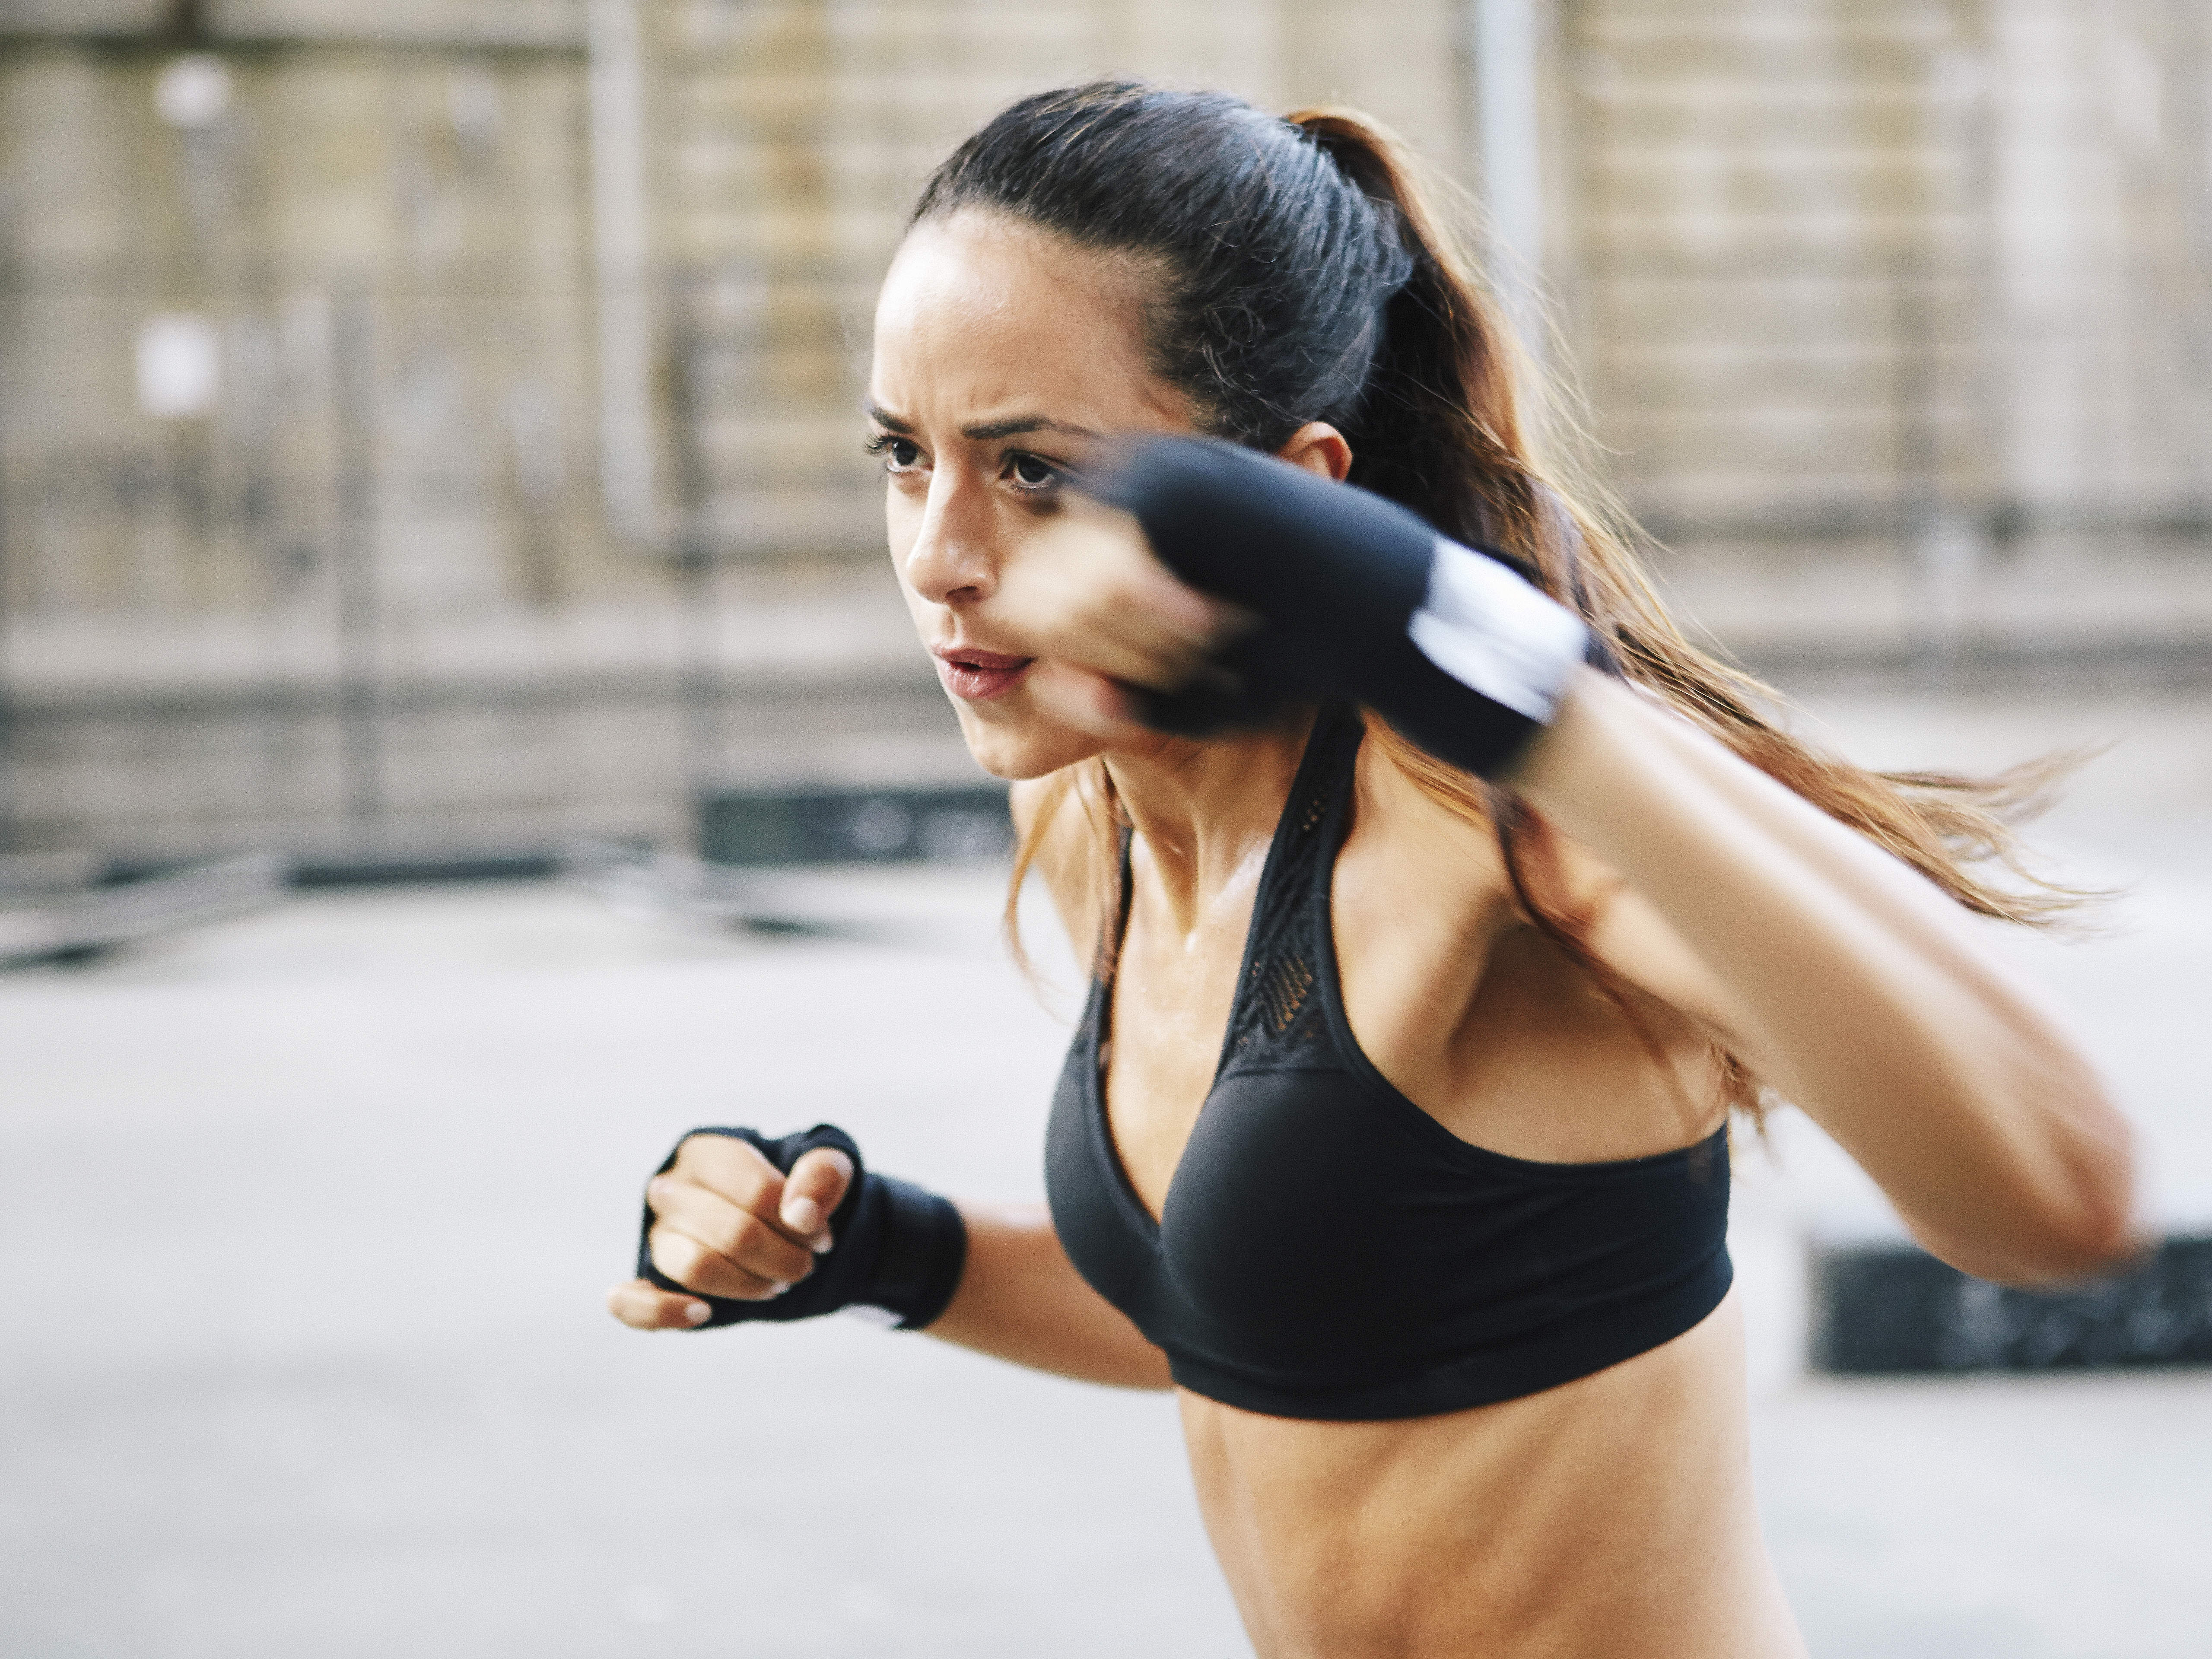 3-boxing-moves-for-beginners-video